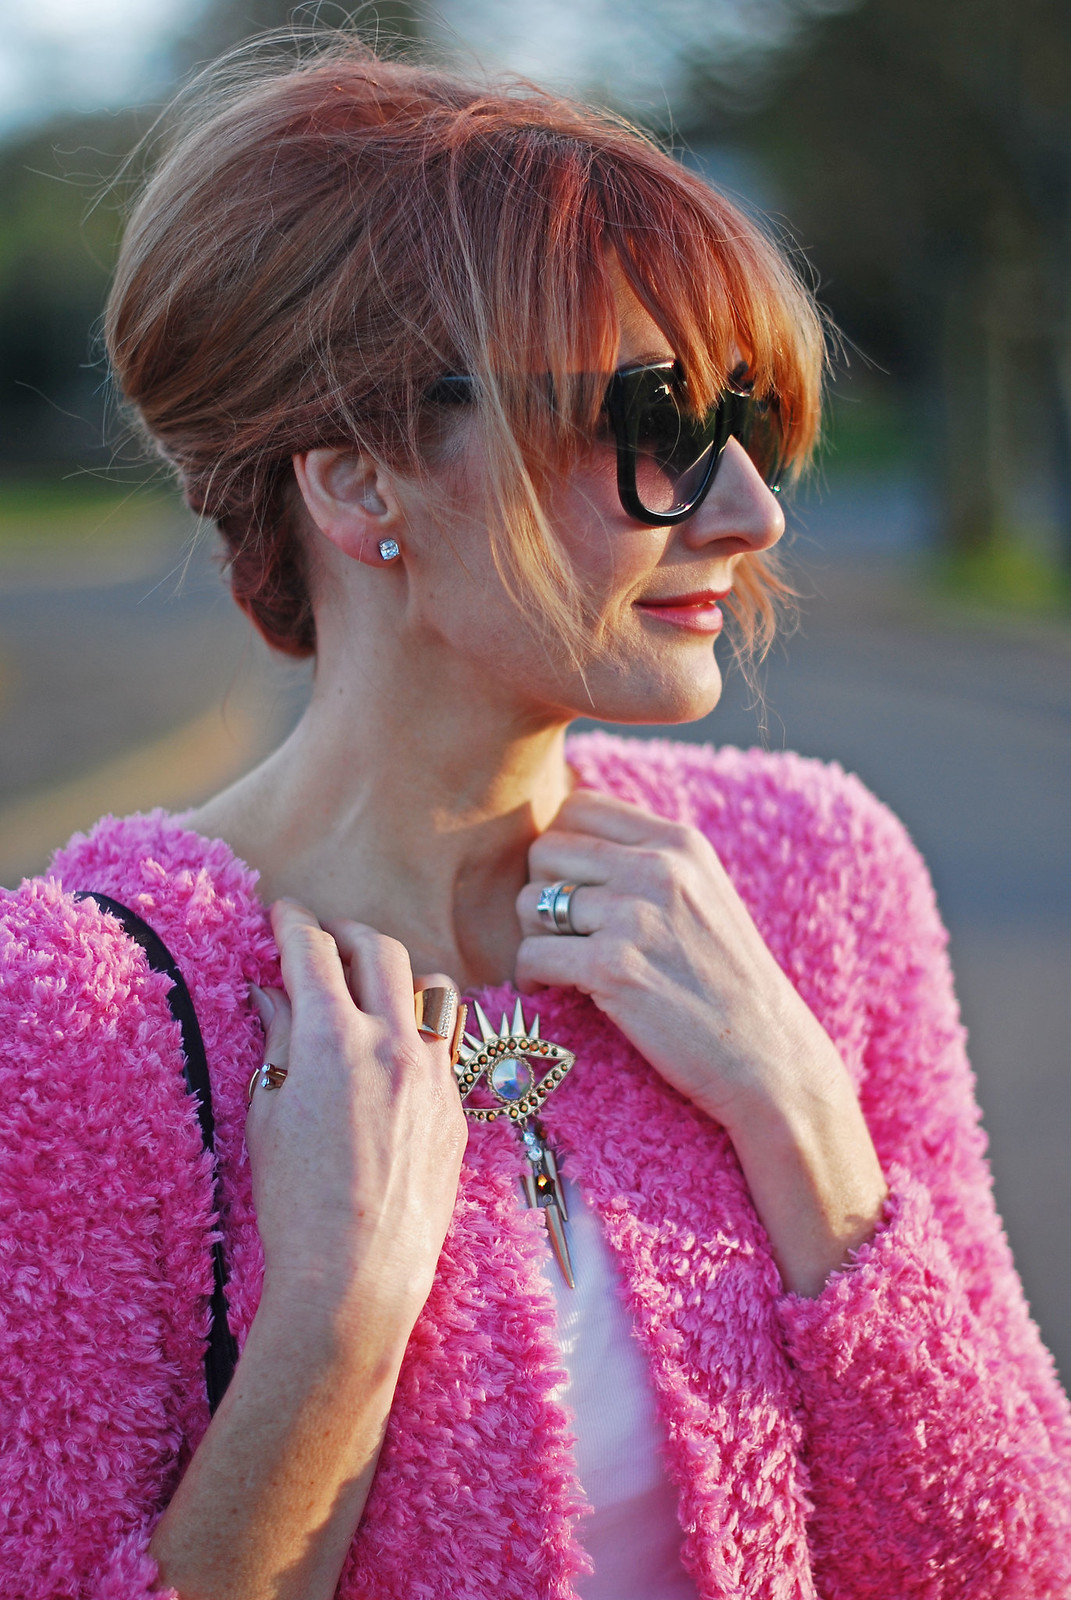 Spring style: Fluffy pink cardigan, up do, cat eye sunglasses, evil eye brooch